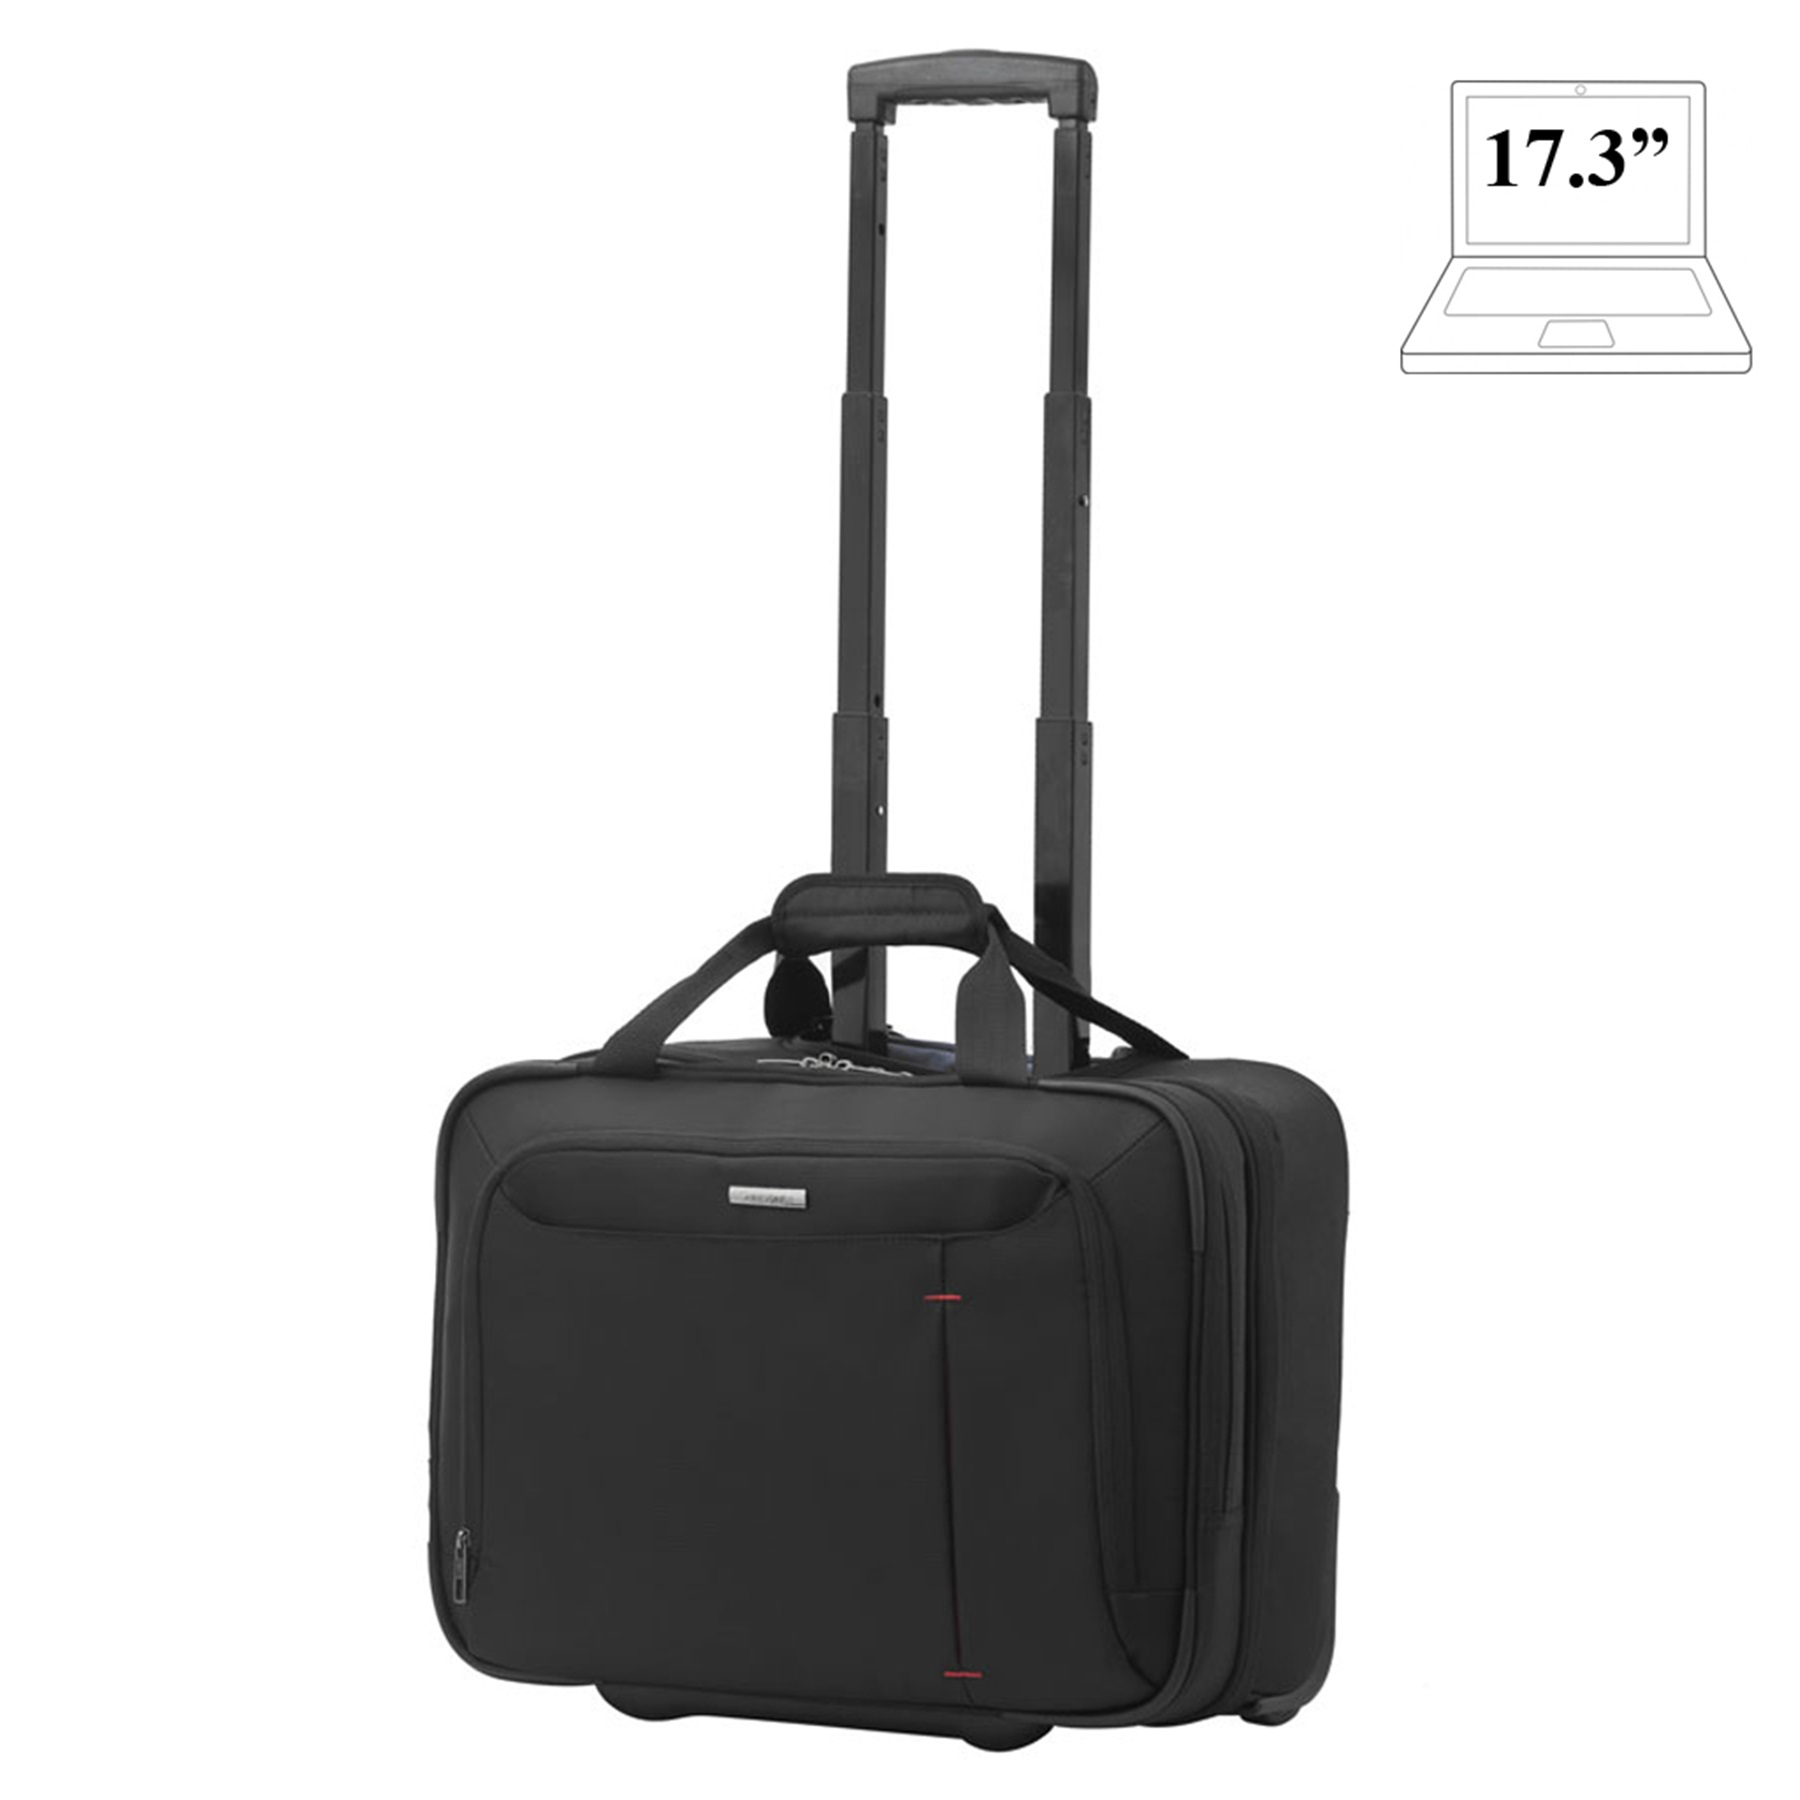 SAMSONITE - BORSE NOTEBOOK - 5414847411595